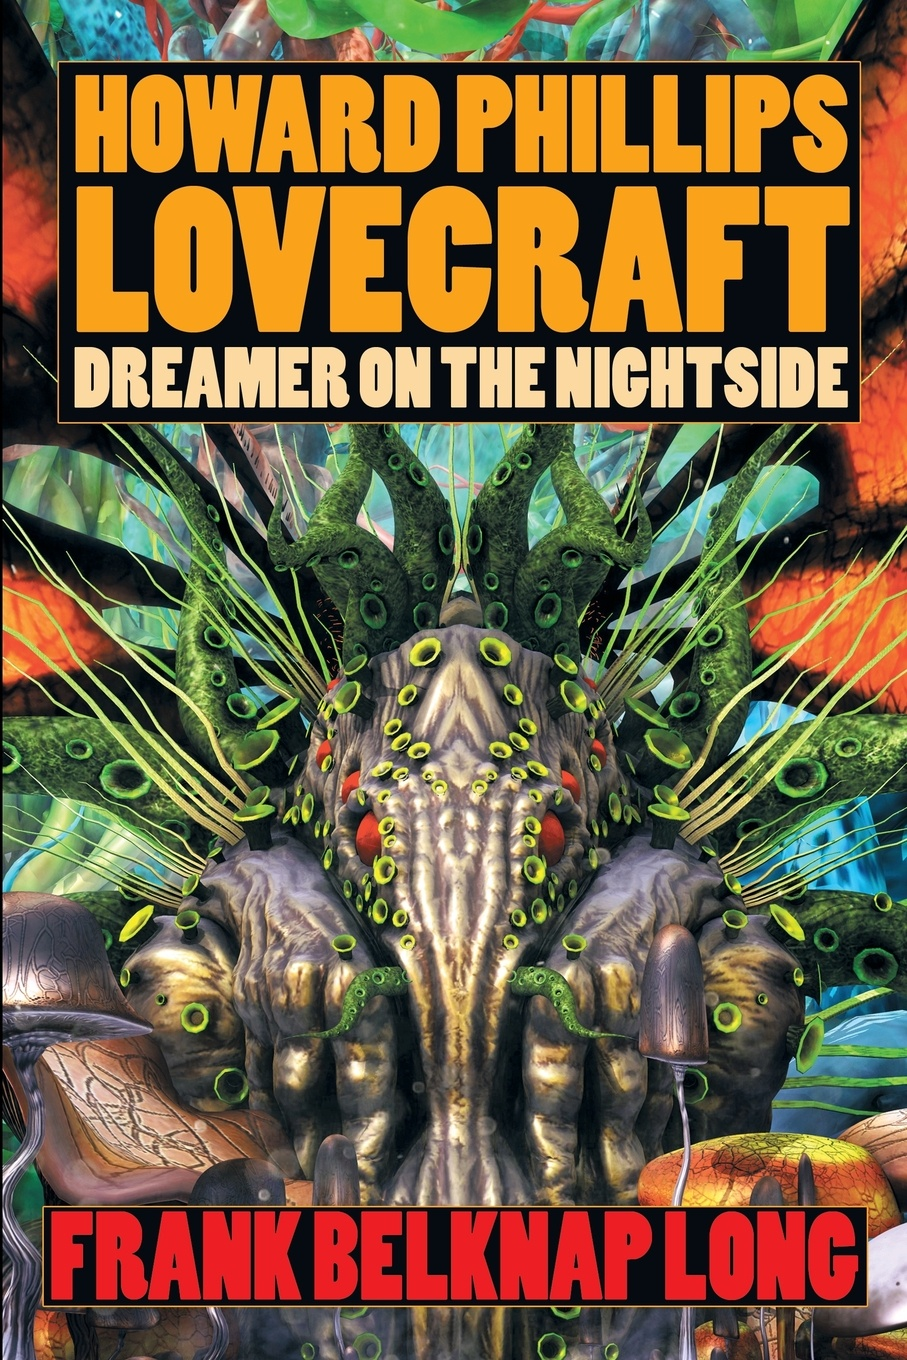 цена Frank Belknap Long Howard Phillips Lovecraft. Dreamer on the Nightside онлайн в 2017 году